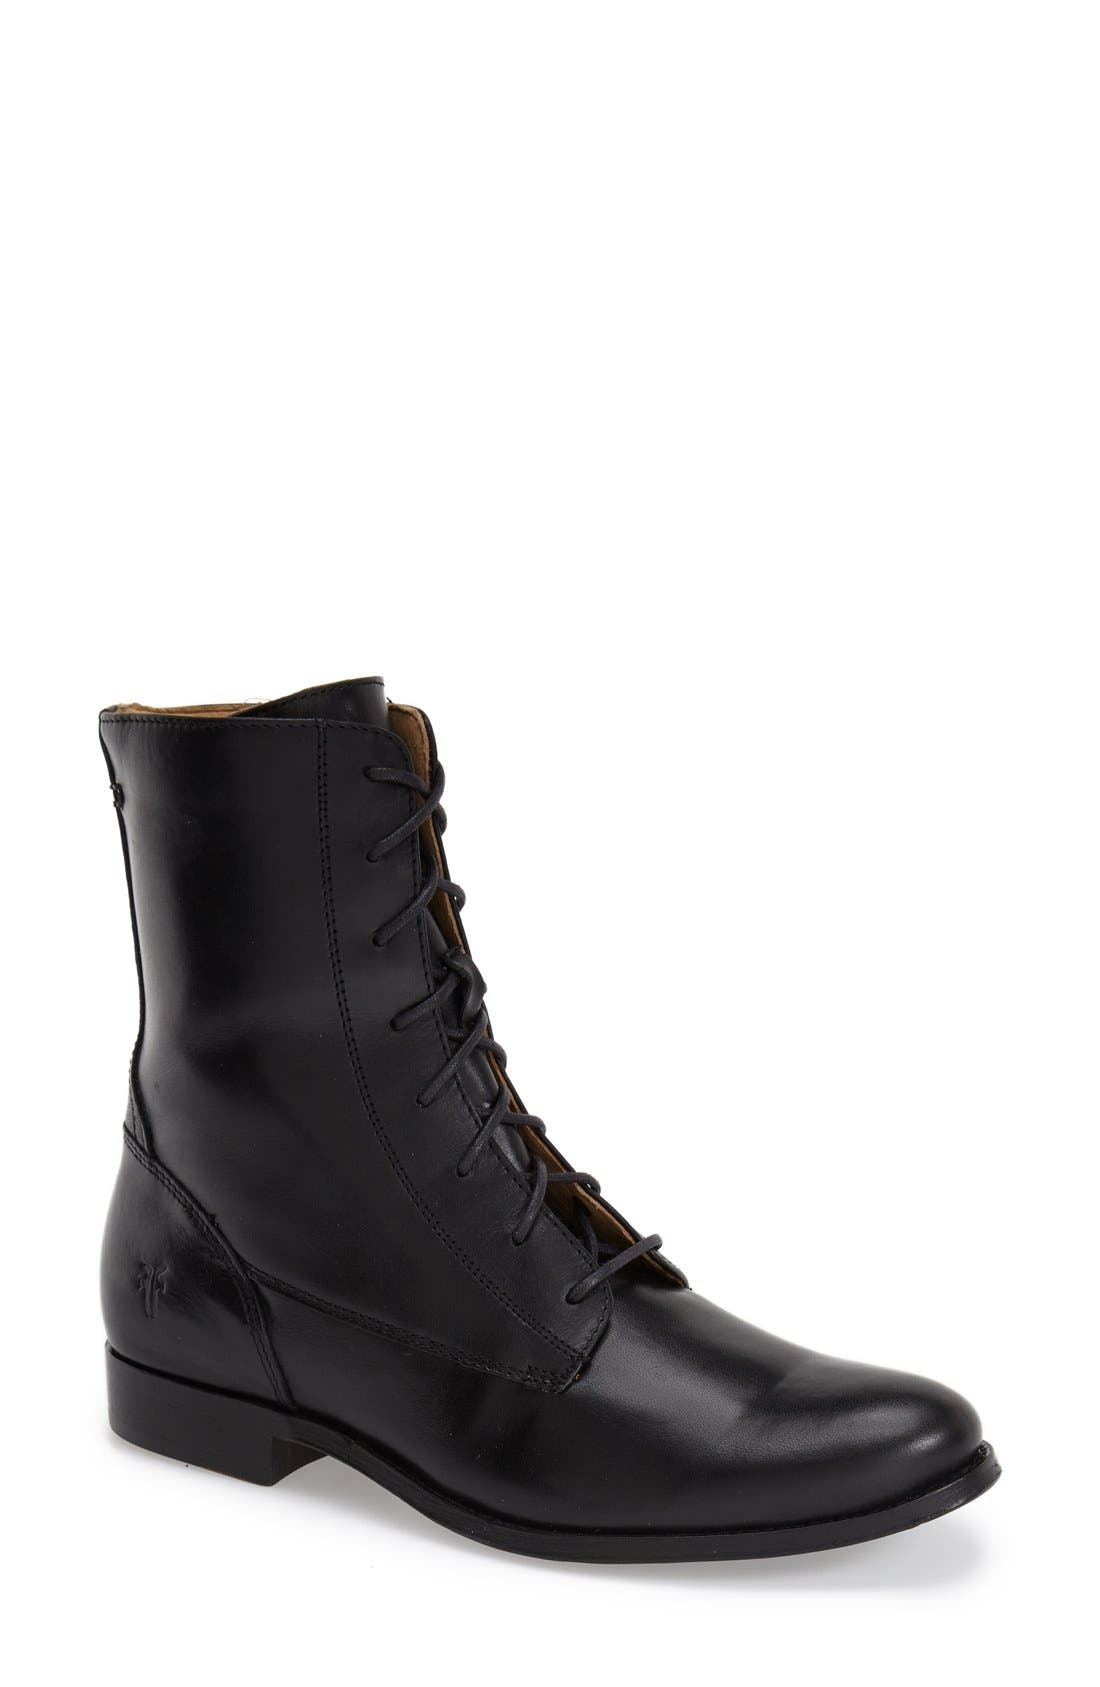 Alternate Image 1 Selected - Frye 'Melissa' Lace-Up Boot (Women)